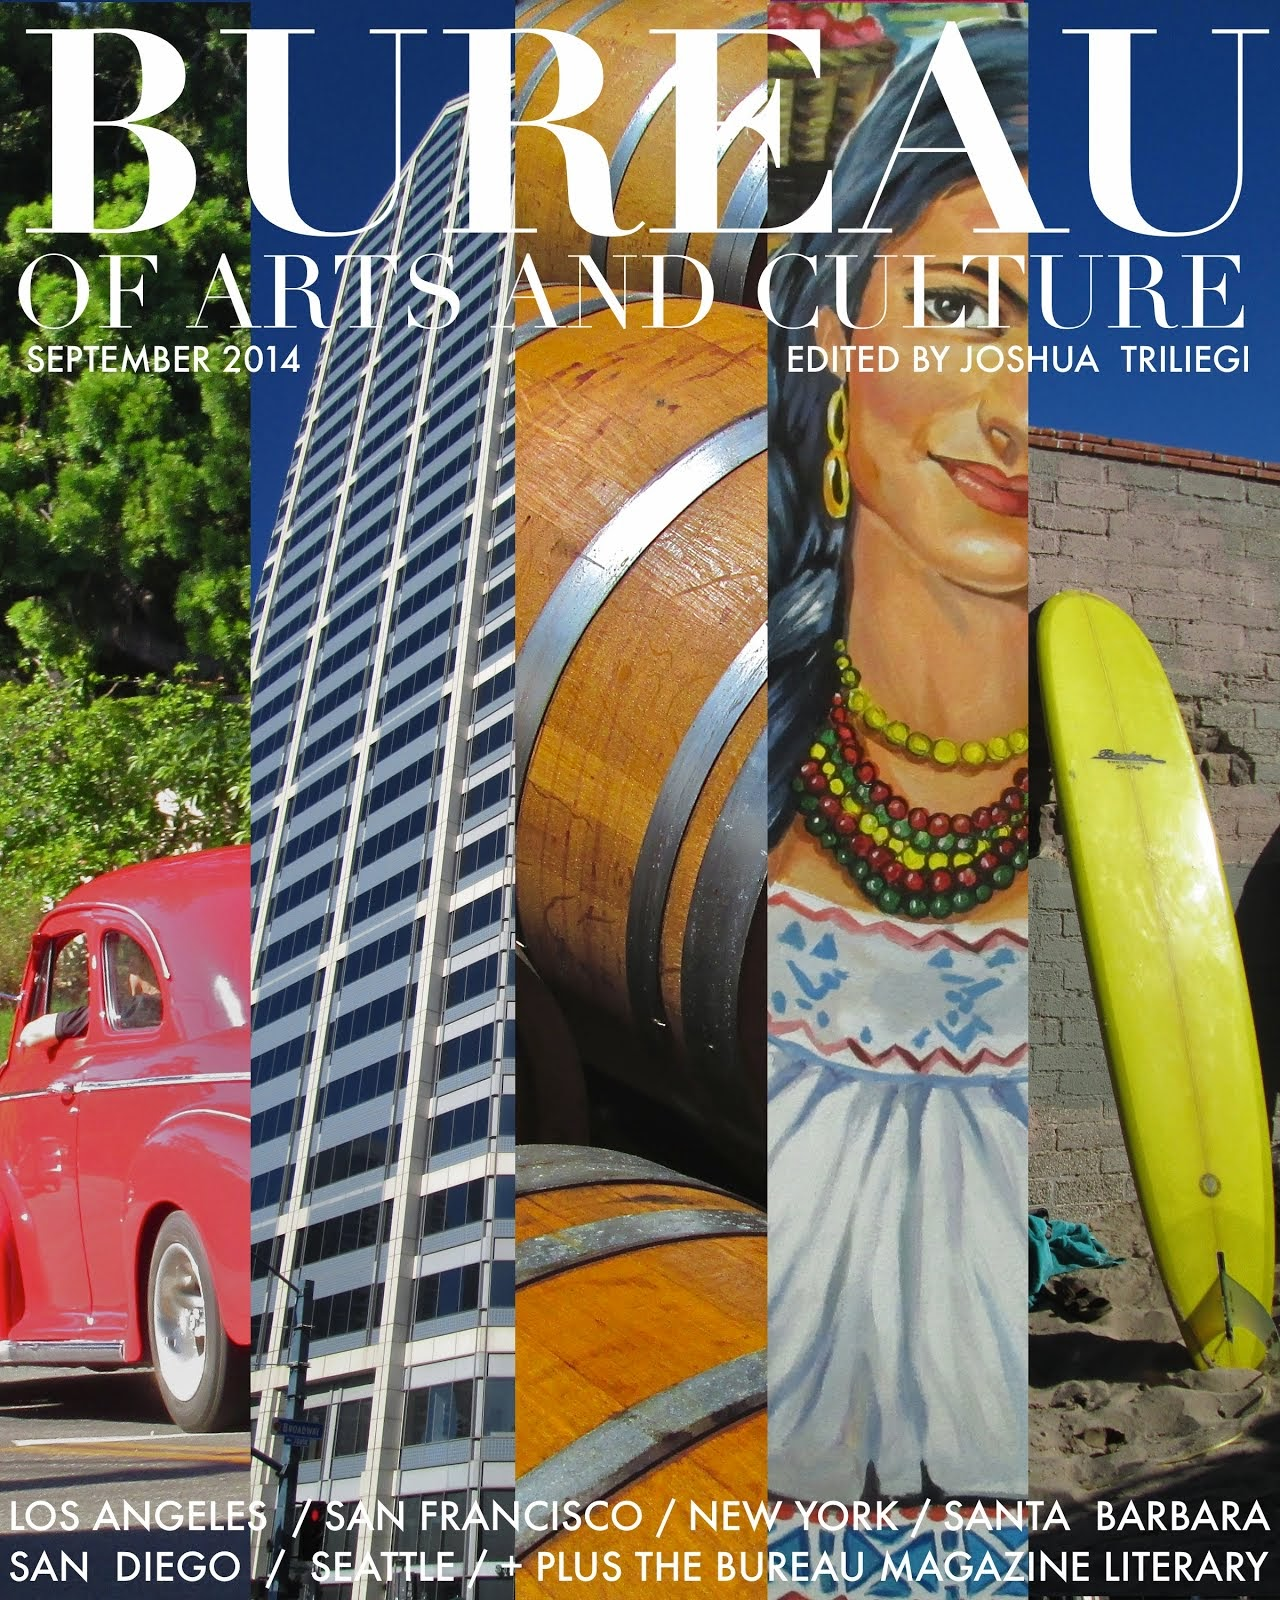 Tap The Image to Get The September 2014 Edition of BUREAU of ARTS and CULTURE MAGAZINE.